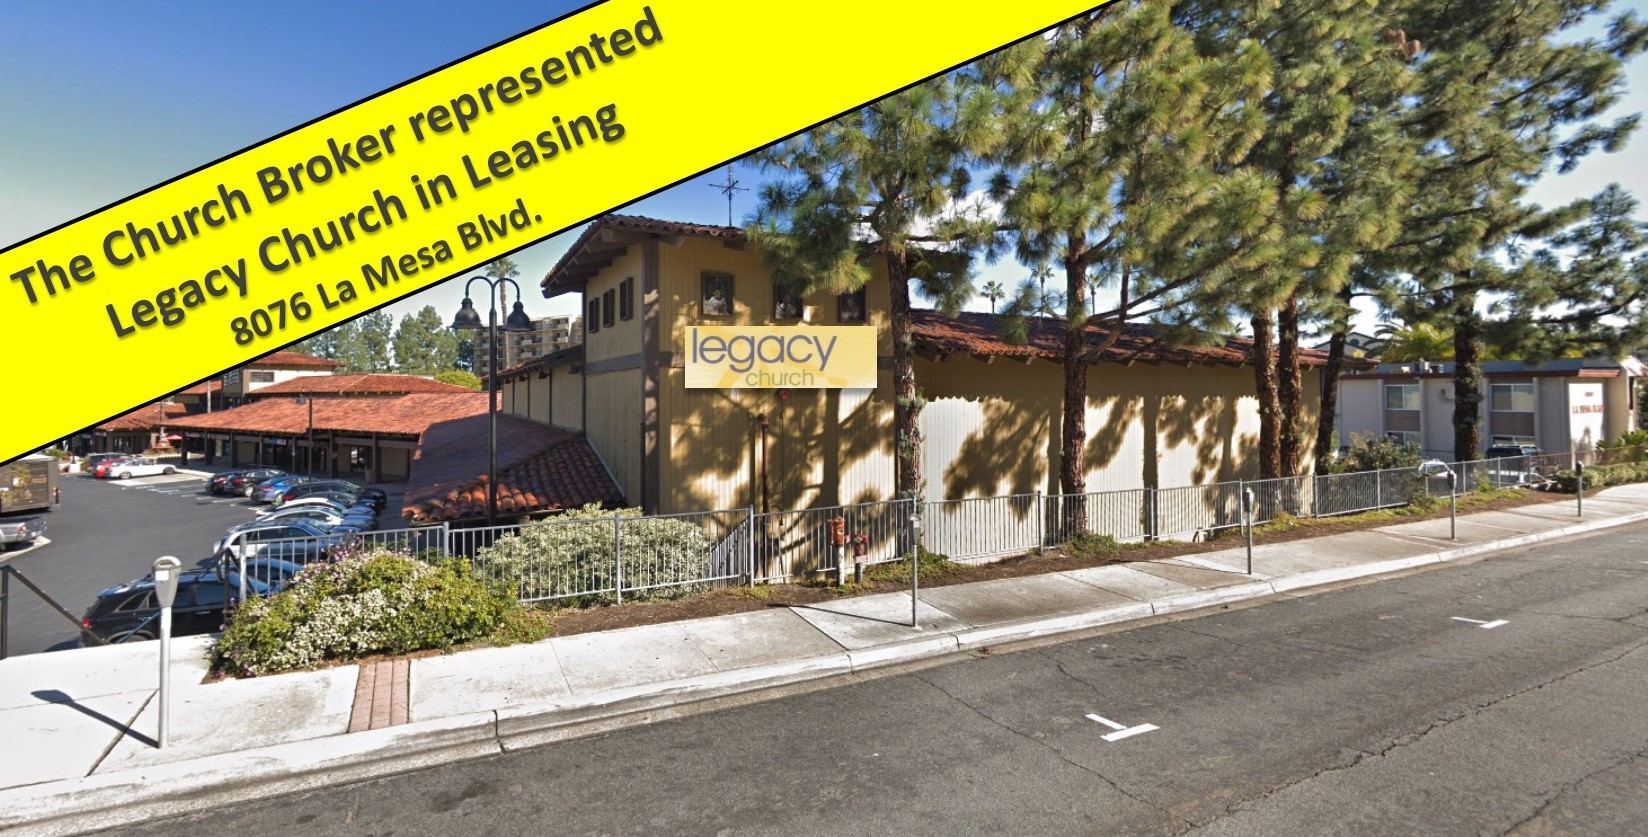 Legacy Church La Mesa Blvd Just Leased